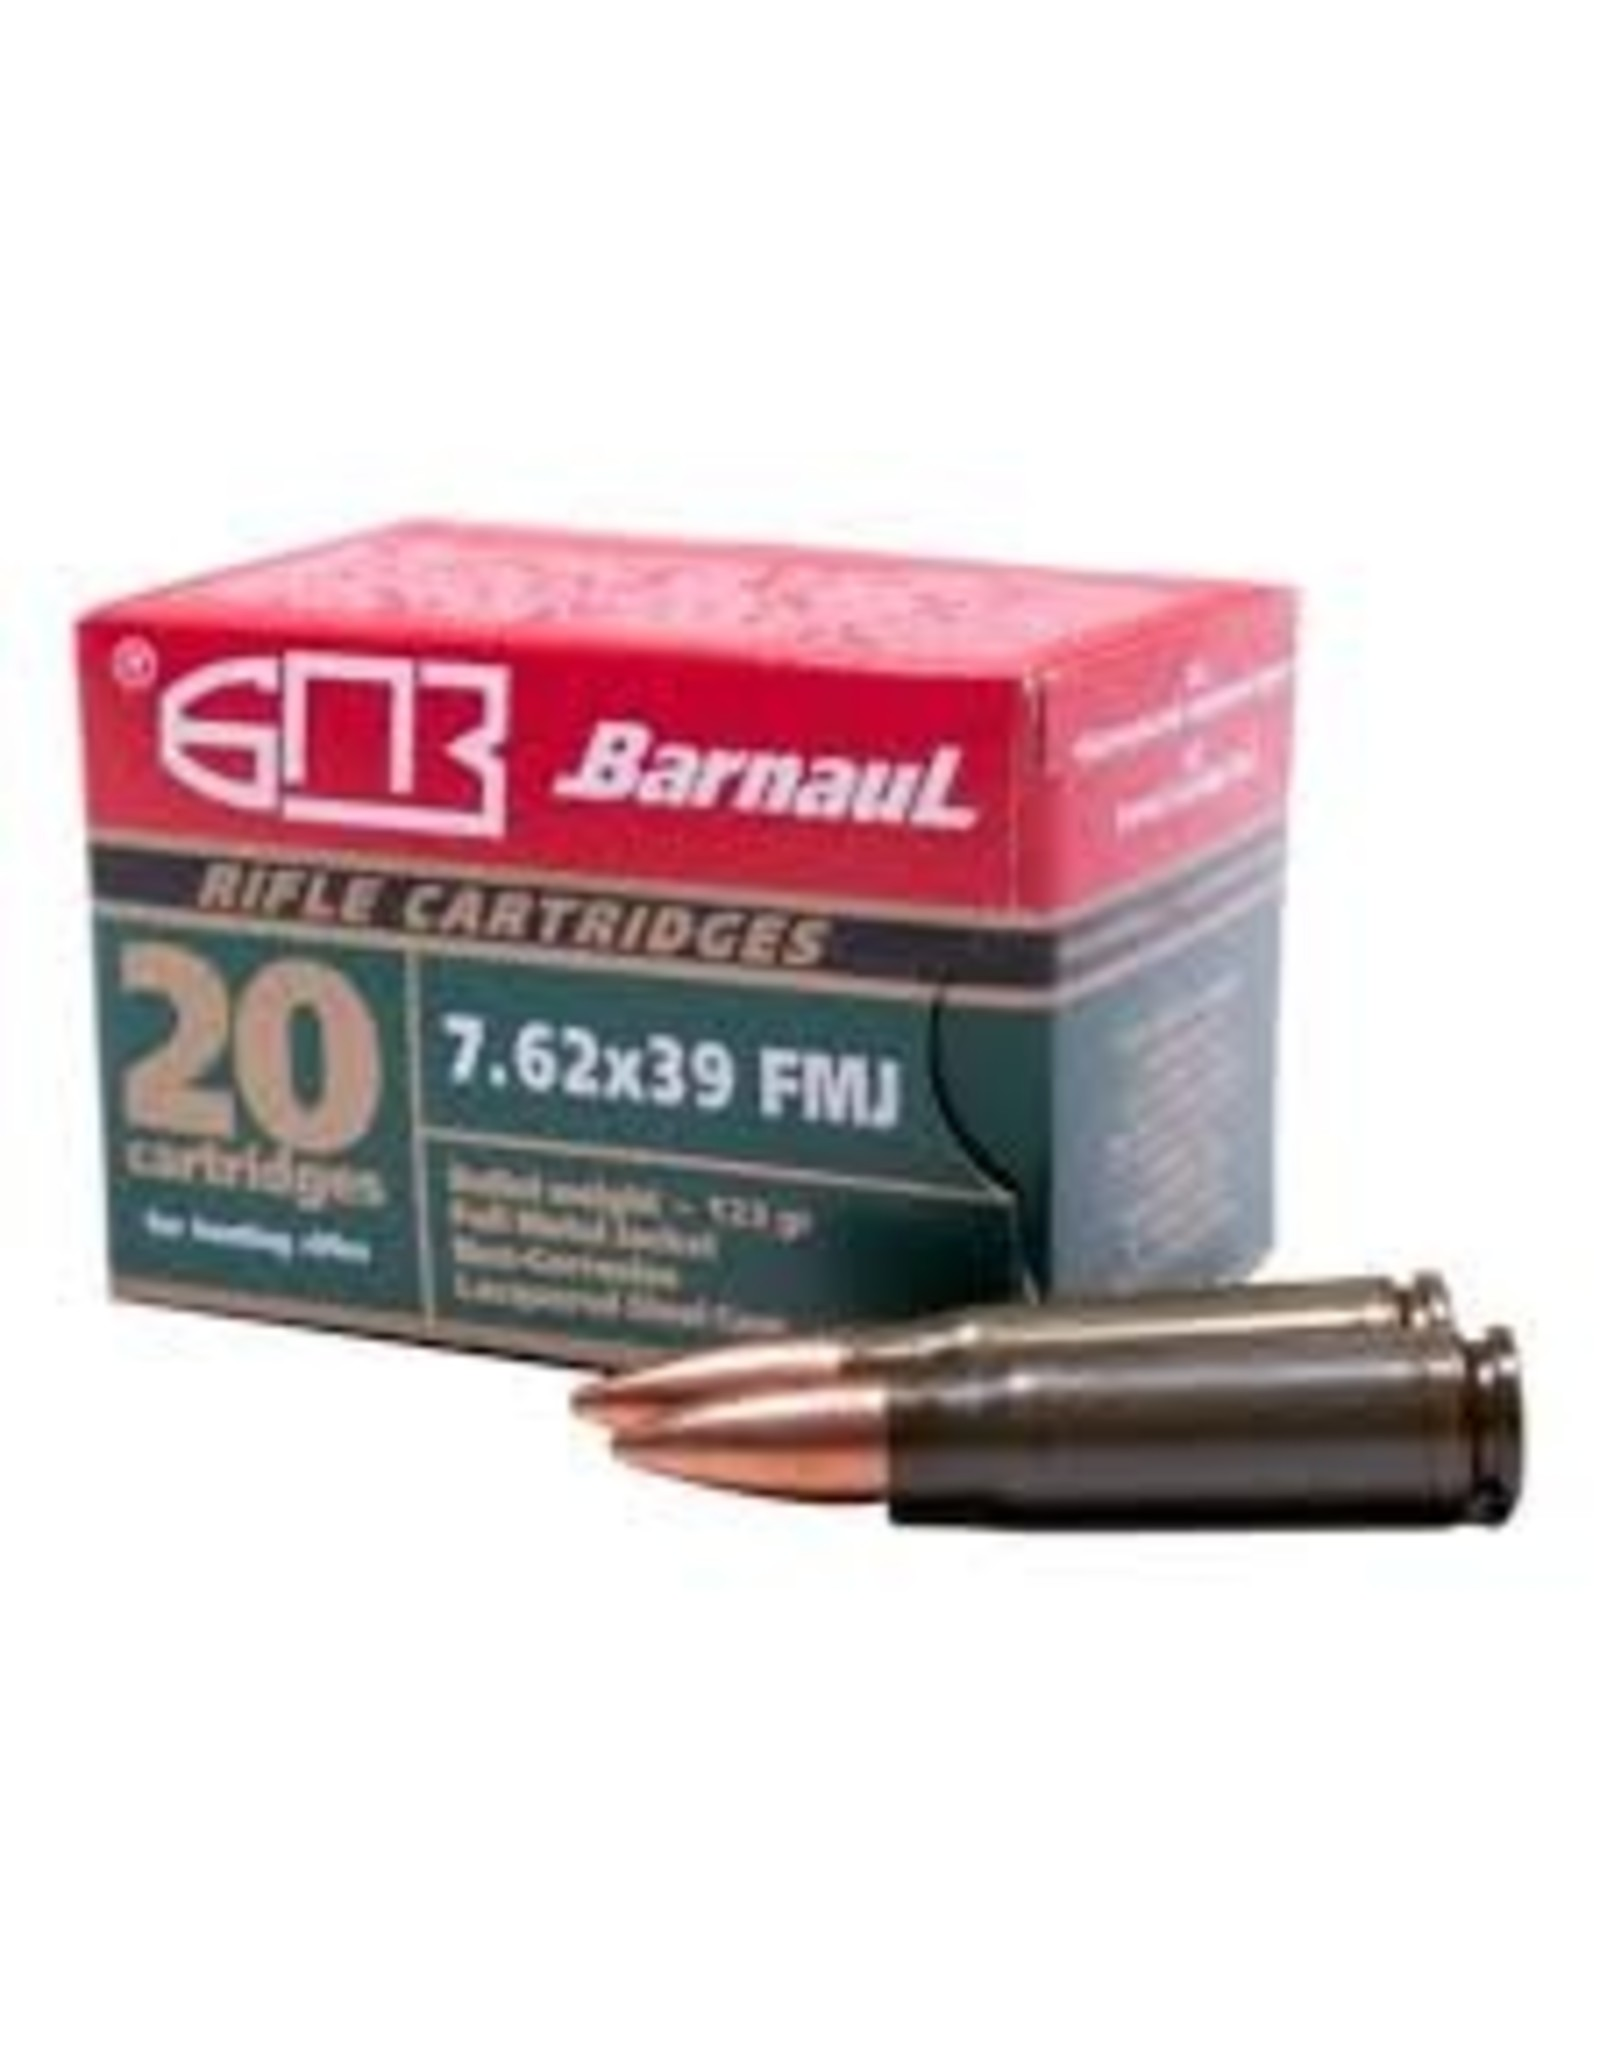 Barnaul Barnaul 7.62X39 125gr Soft Point